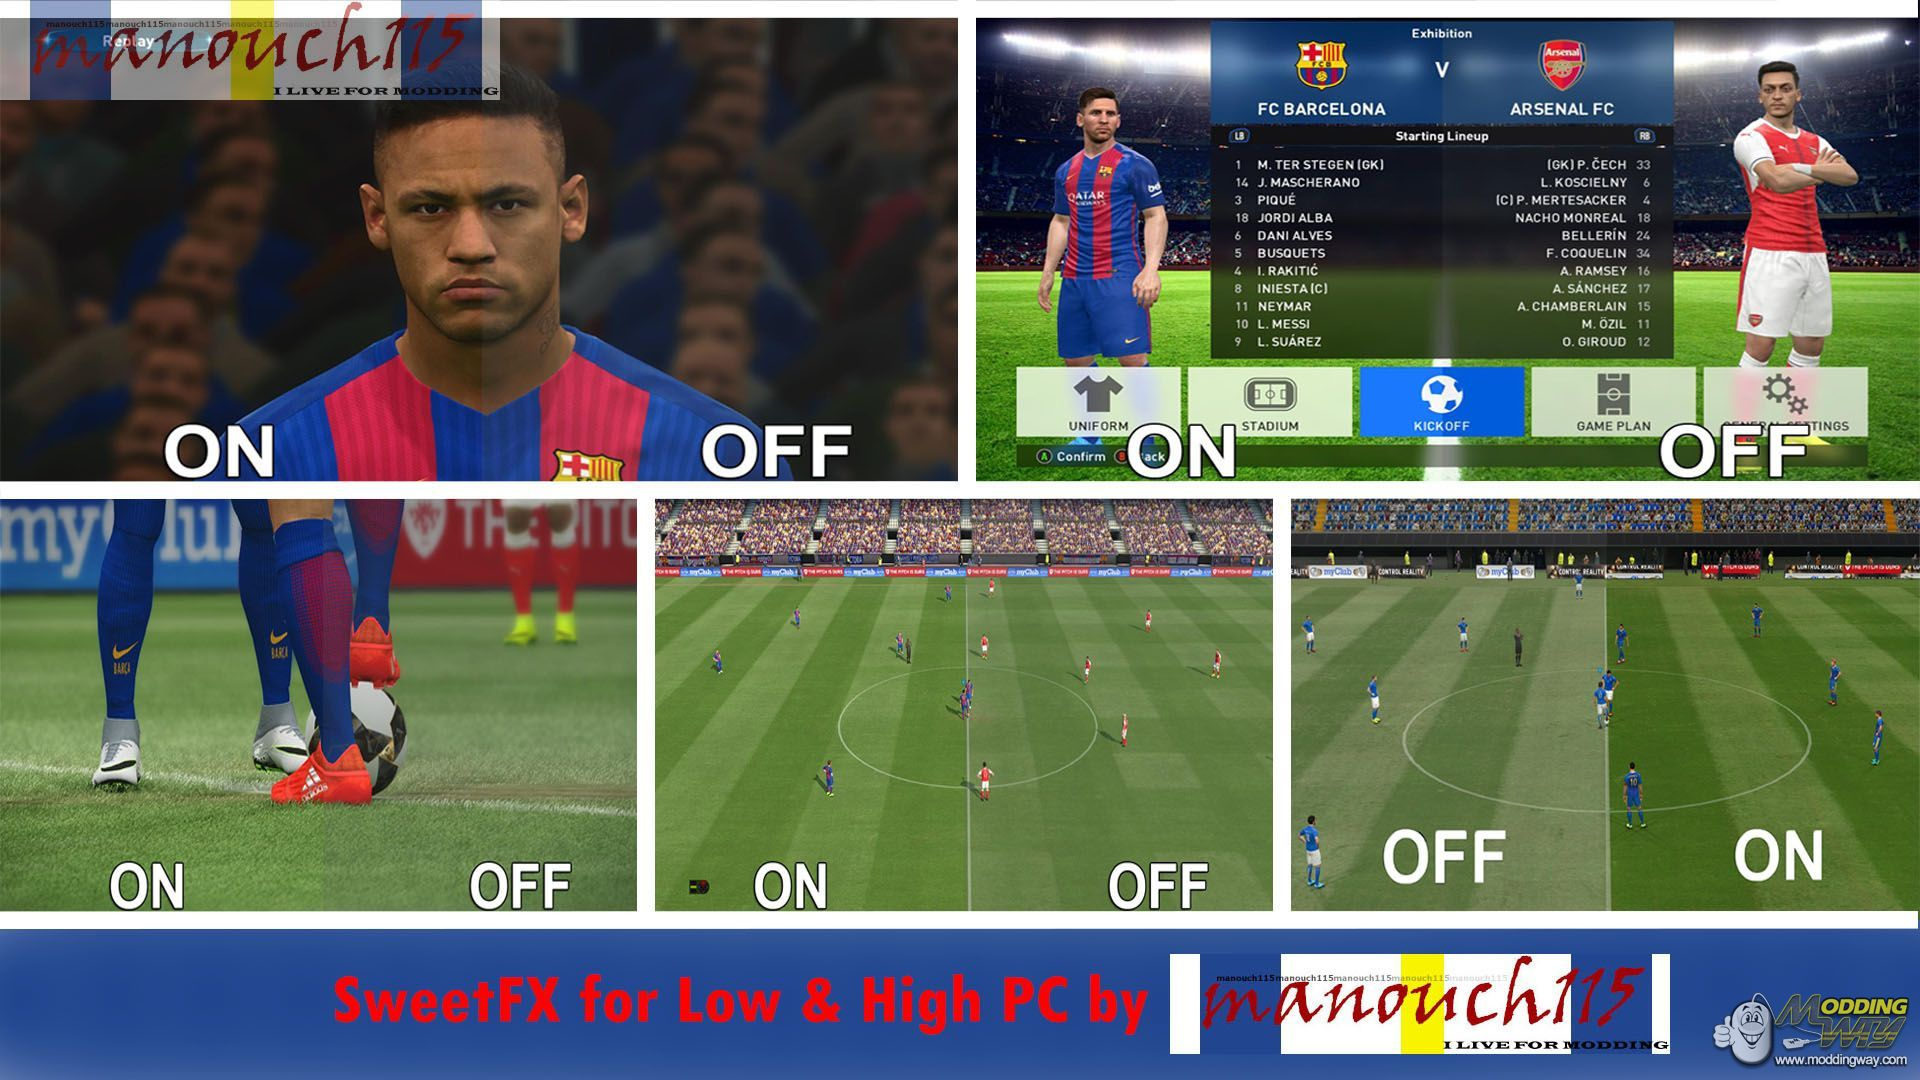 SweetFX for Low & High PC by manouch 115 - Pro Evolution Soccer 2017